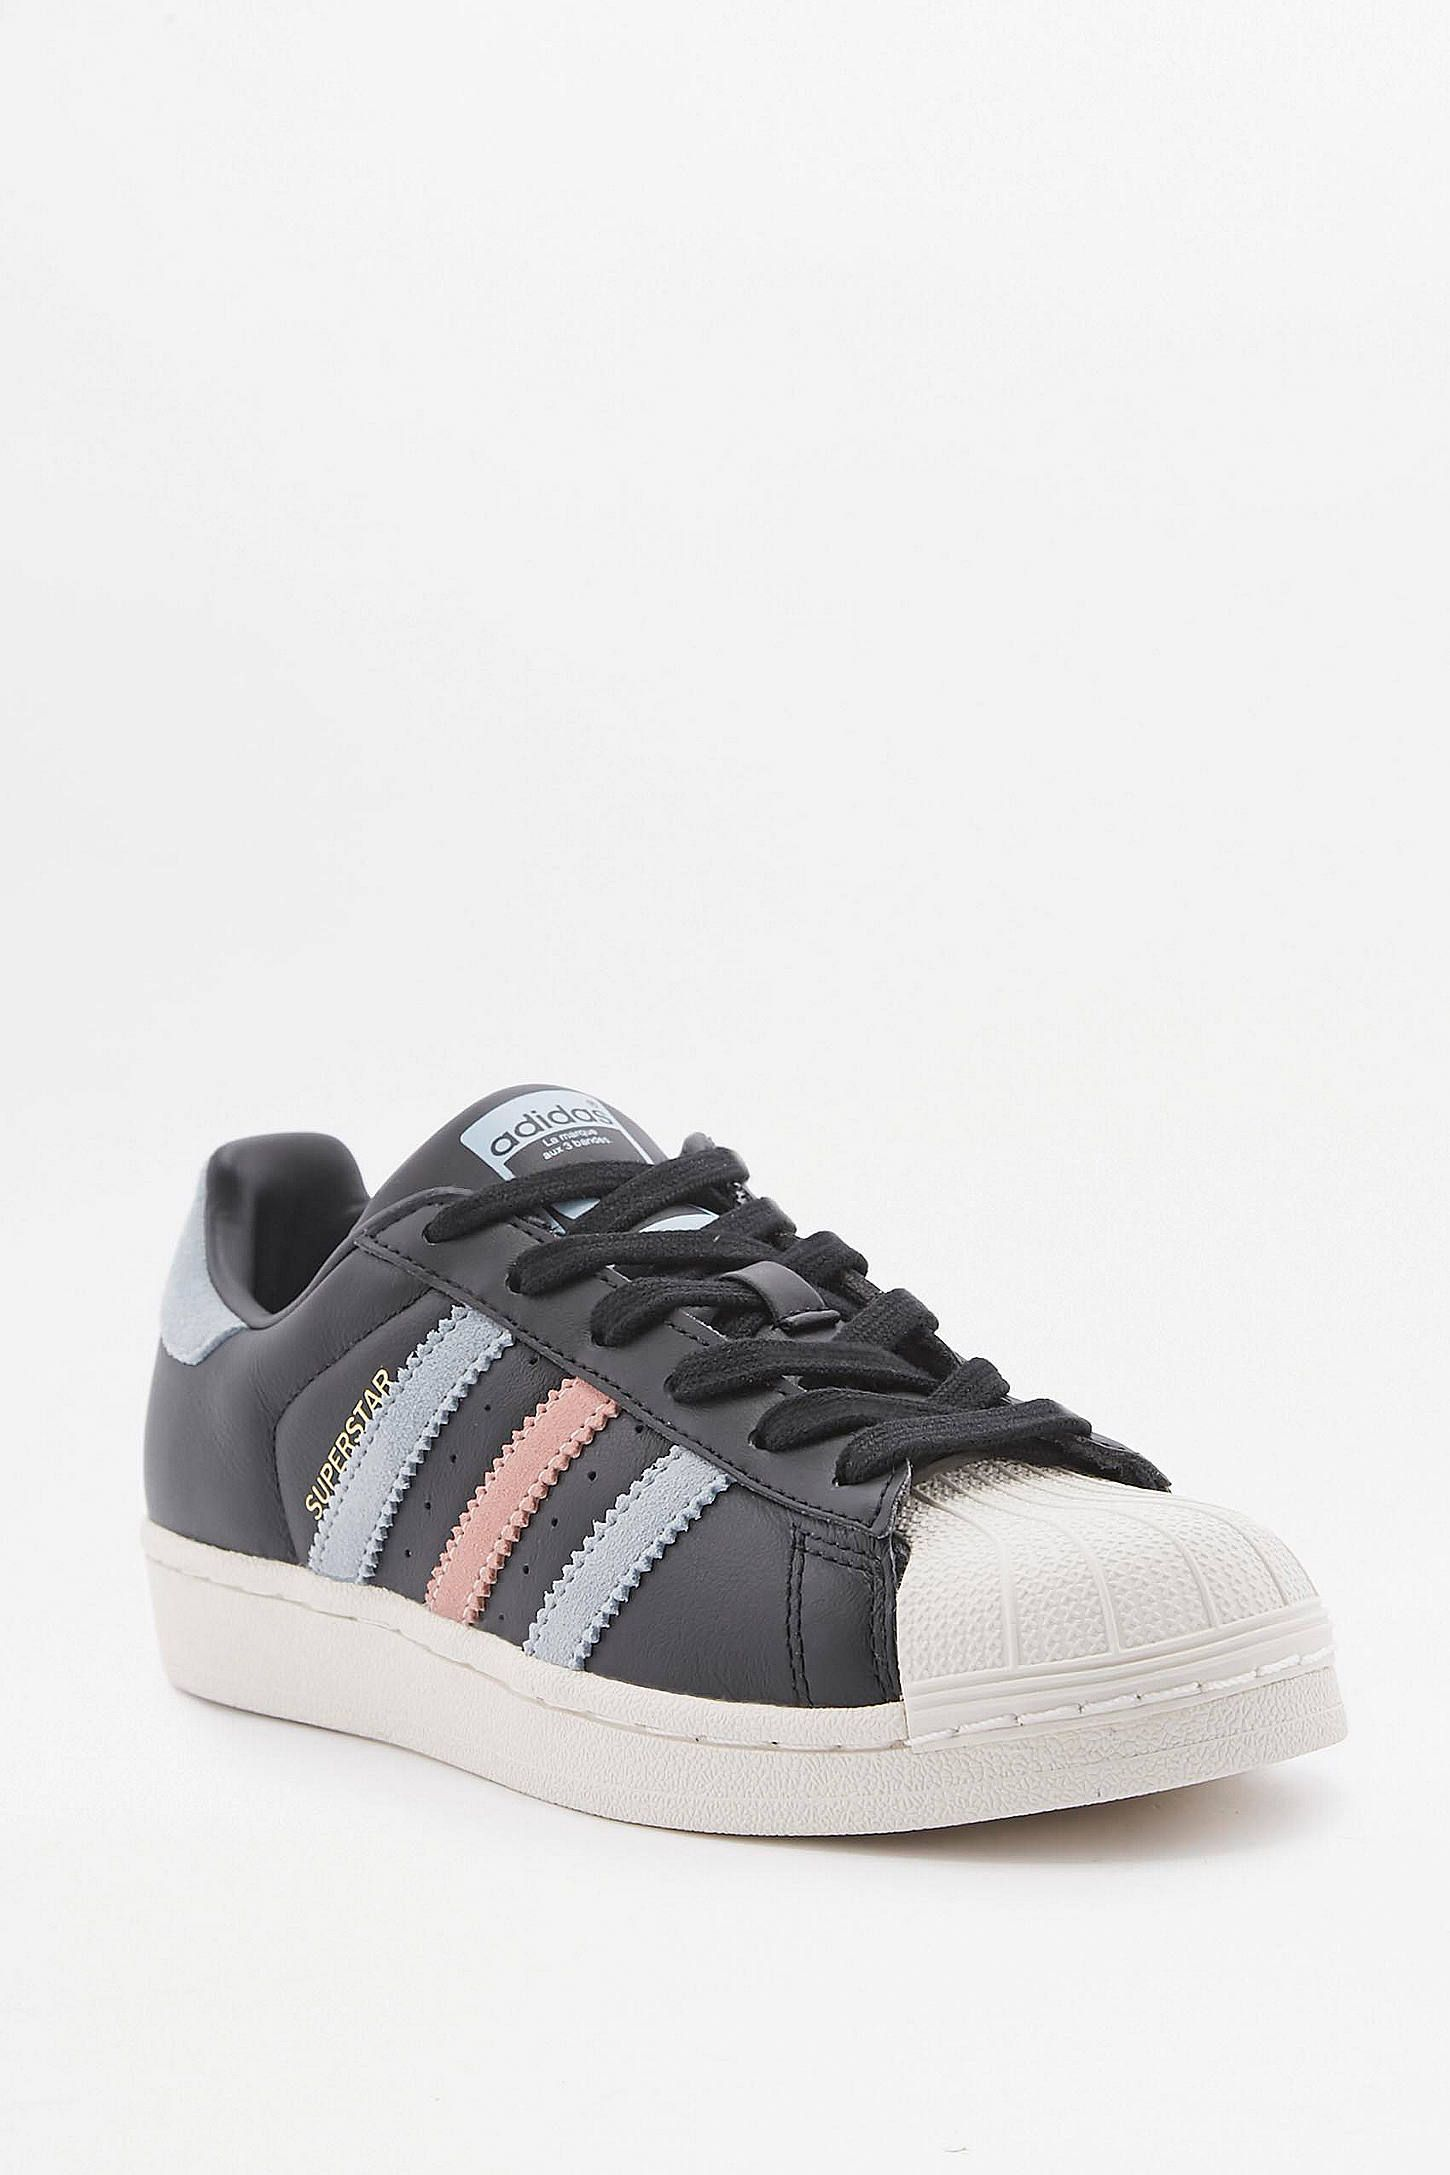 dc6e7fea503a Slide View  2  adidas Originals Superstar Black With Blue And Pink Stripes  Trainers